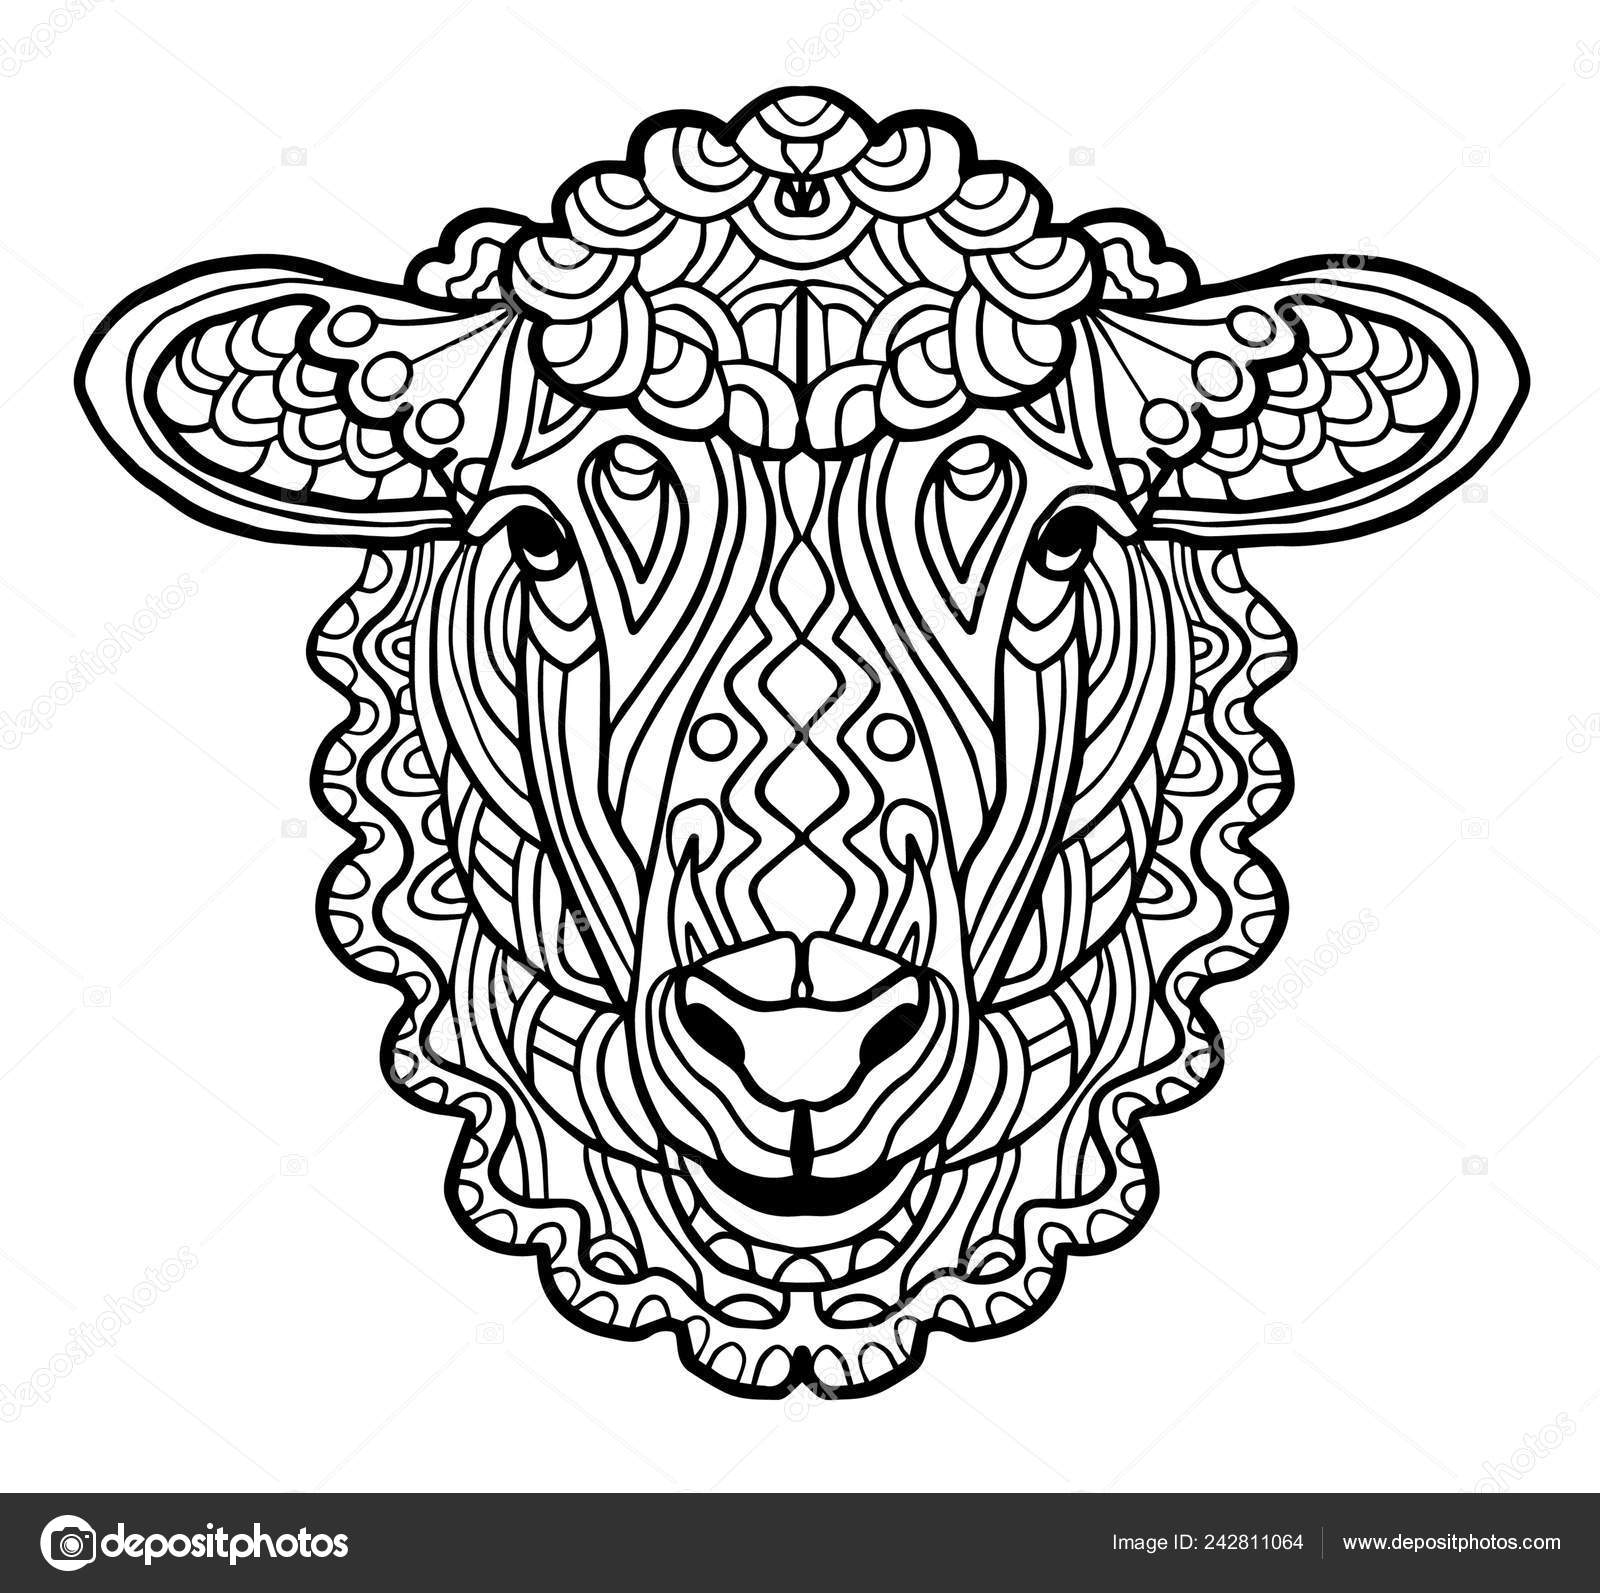 Zen Antistress Free Adult 23 Coloring Pages Printable | 1593x1600